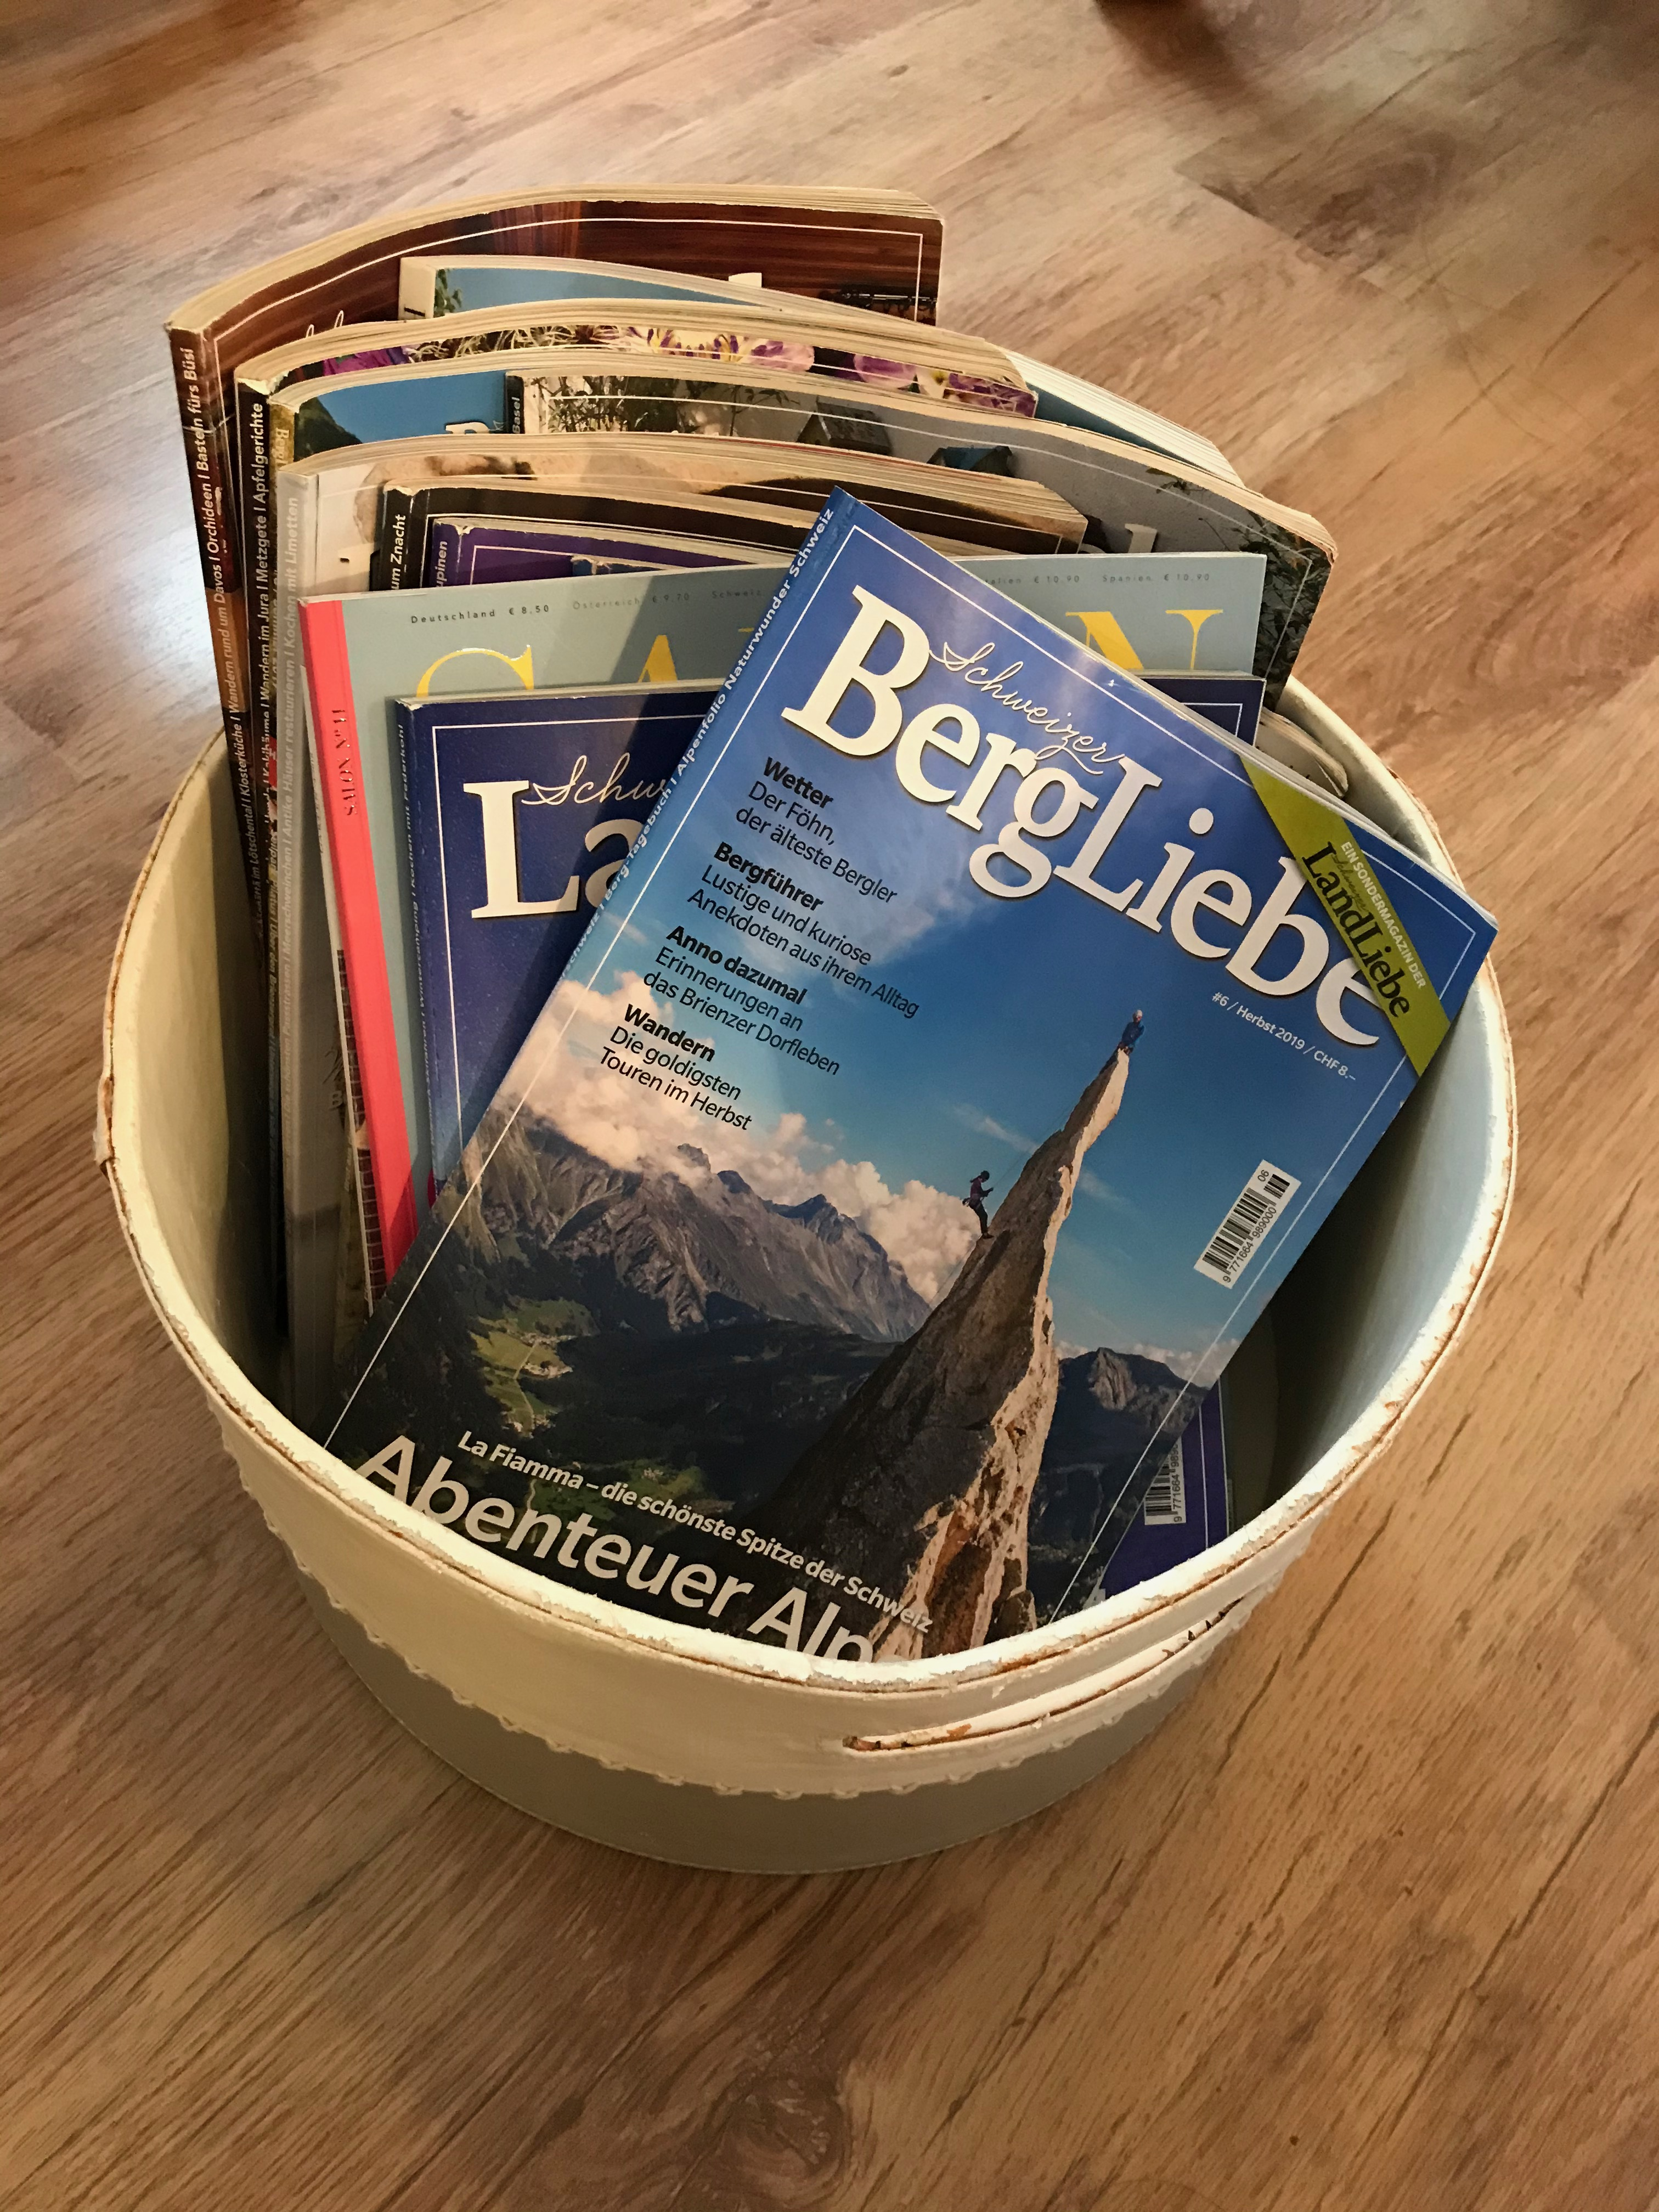 Magazines and books for you to relax and enjoy